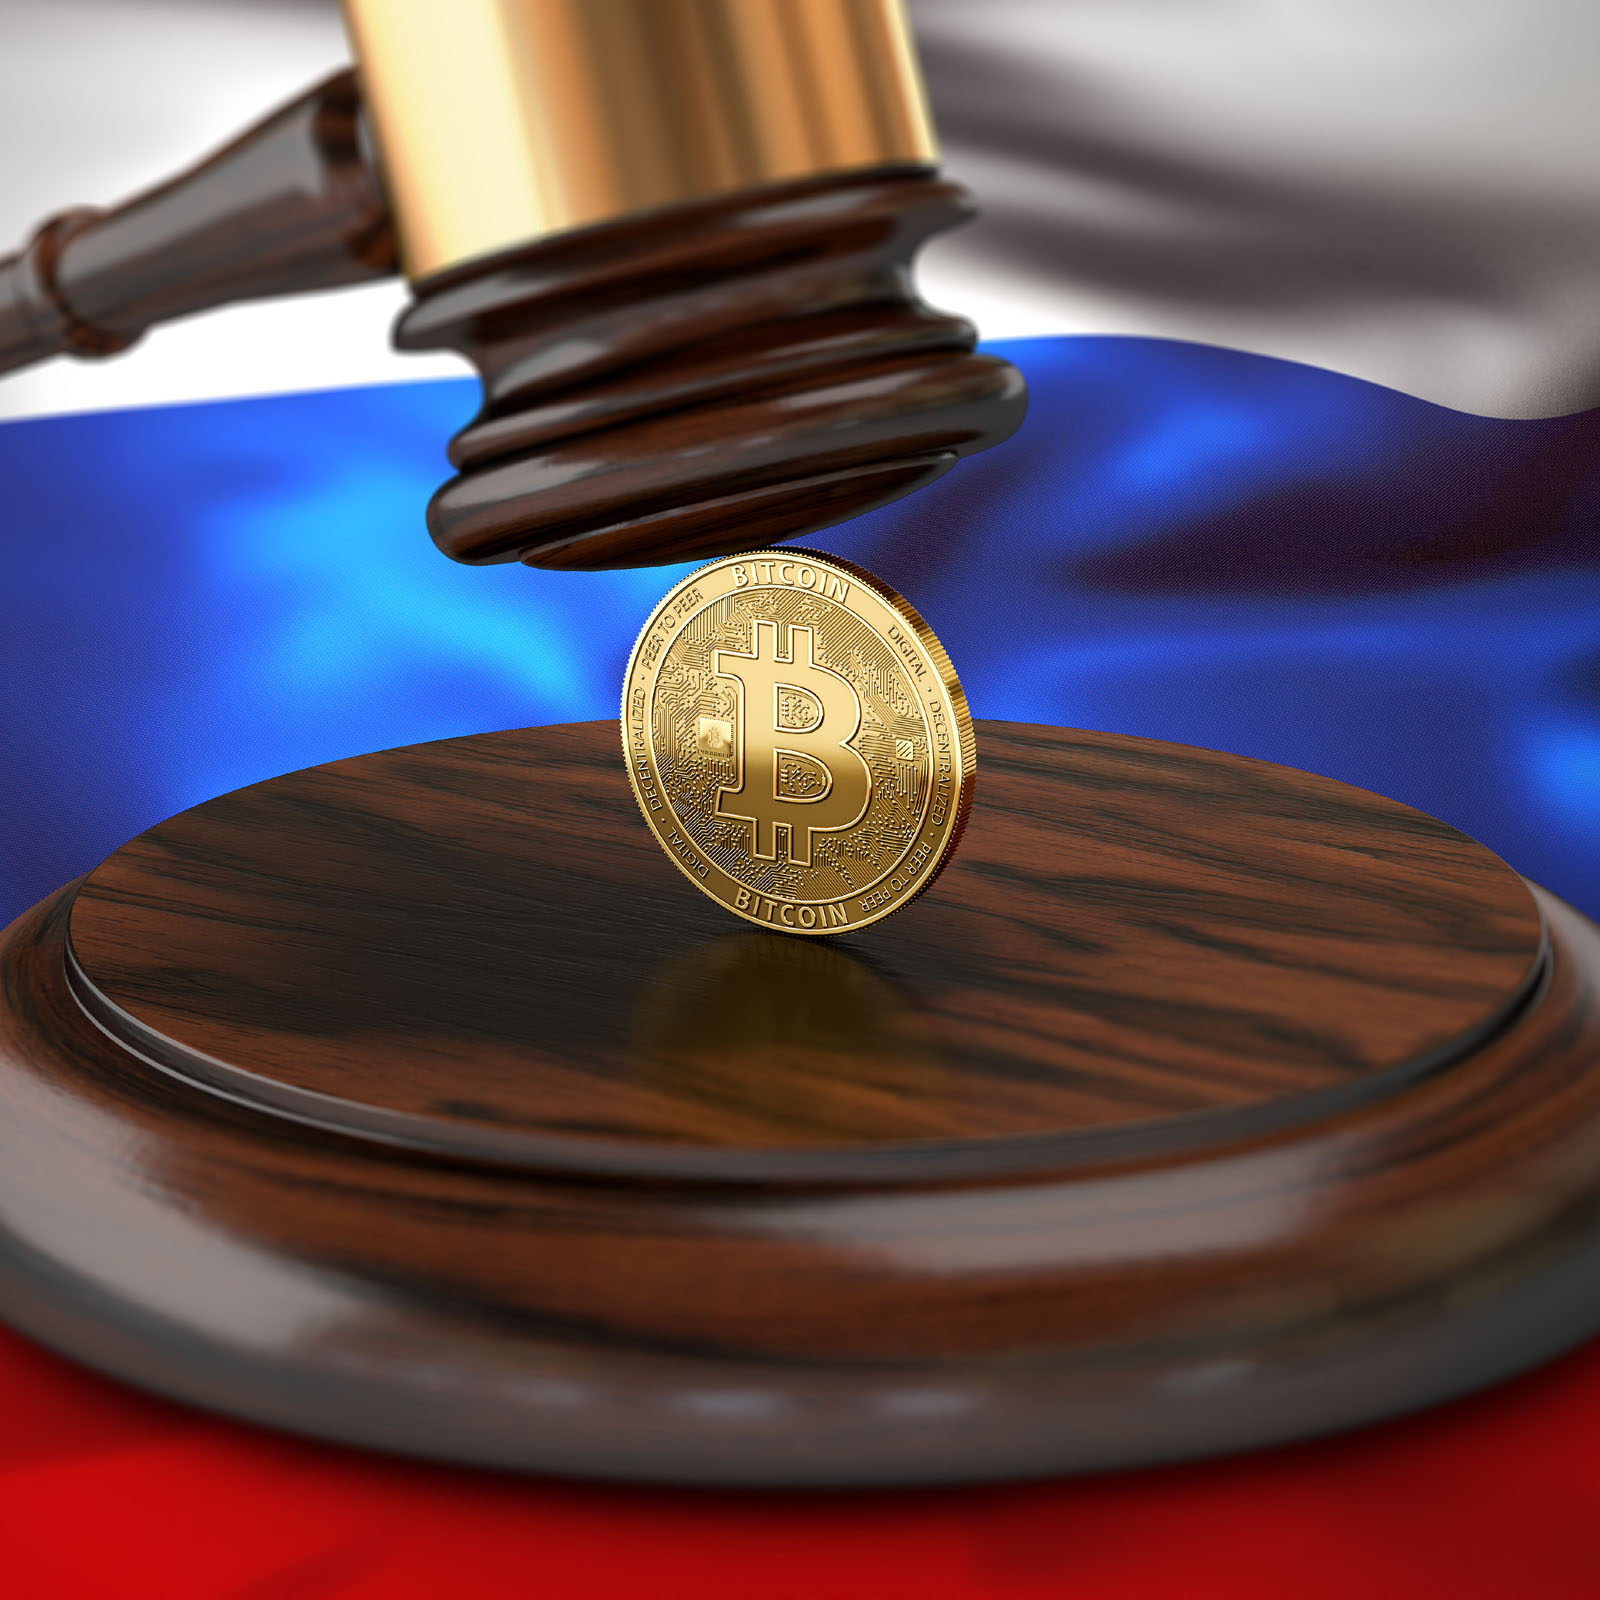 Russia | Russian Court | Cryptocurrency | Cryptocurrency equals property | Cryptocurrency updates